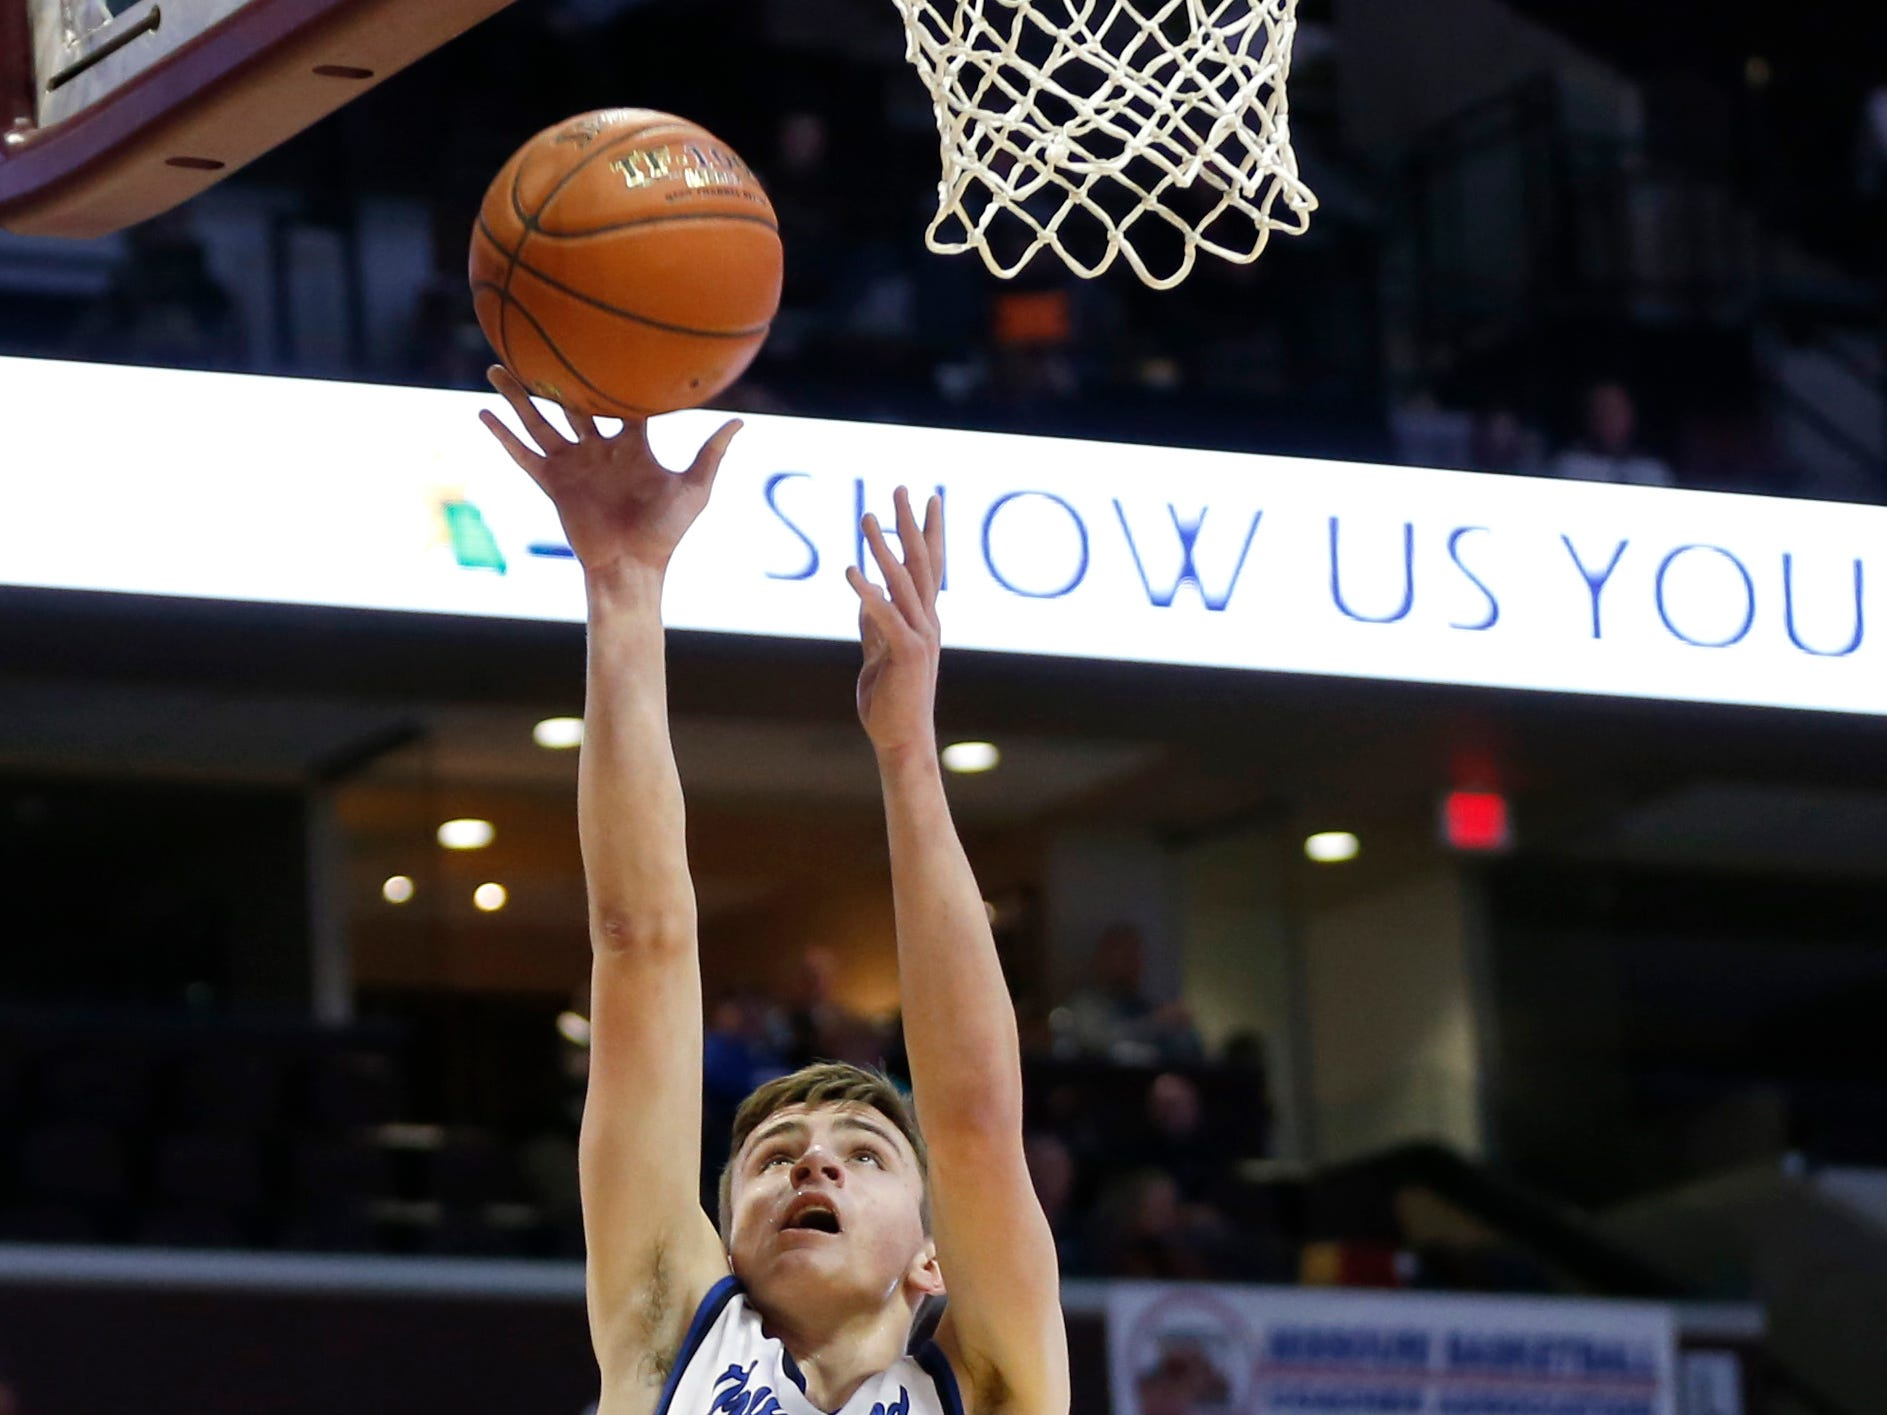 The Greenwood Blue Jays take on the Plattsburg Tigers in the semifinal round of Class 2 state basketball at JQH Arena on Friday, March 8, 2019.